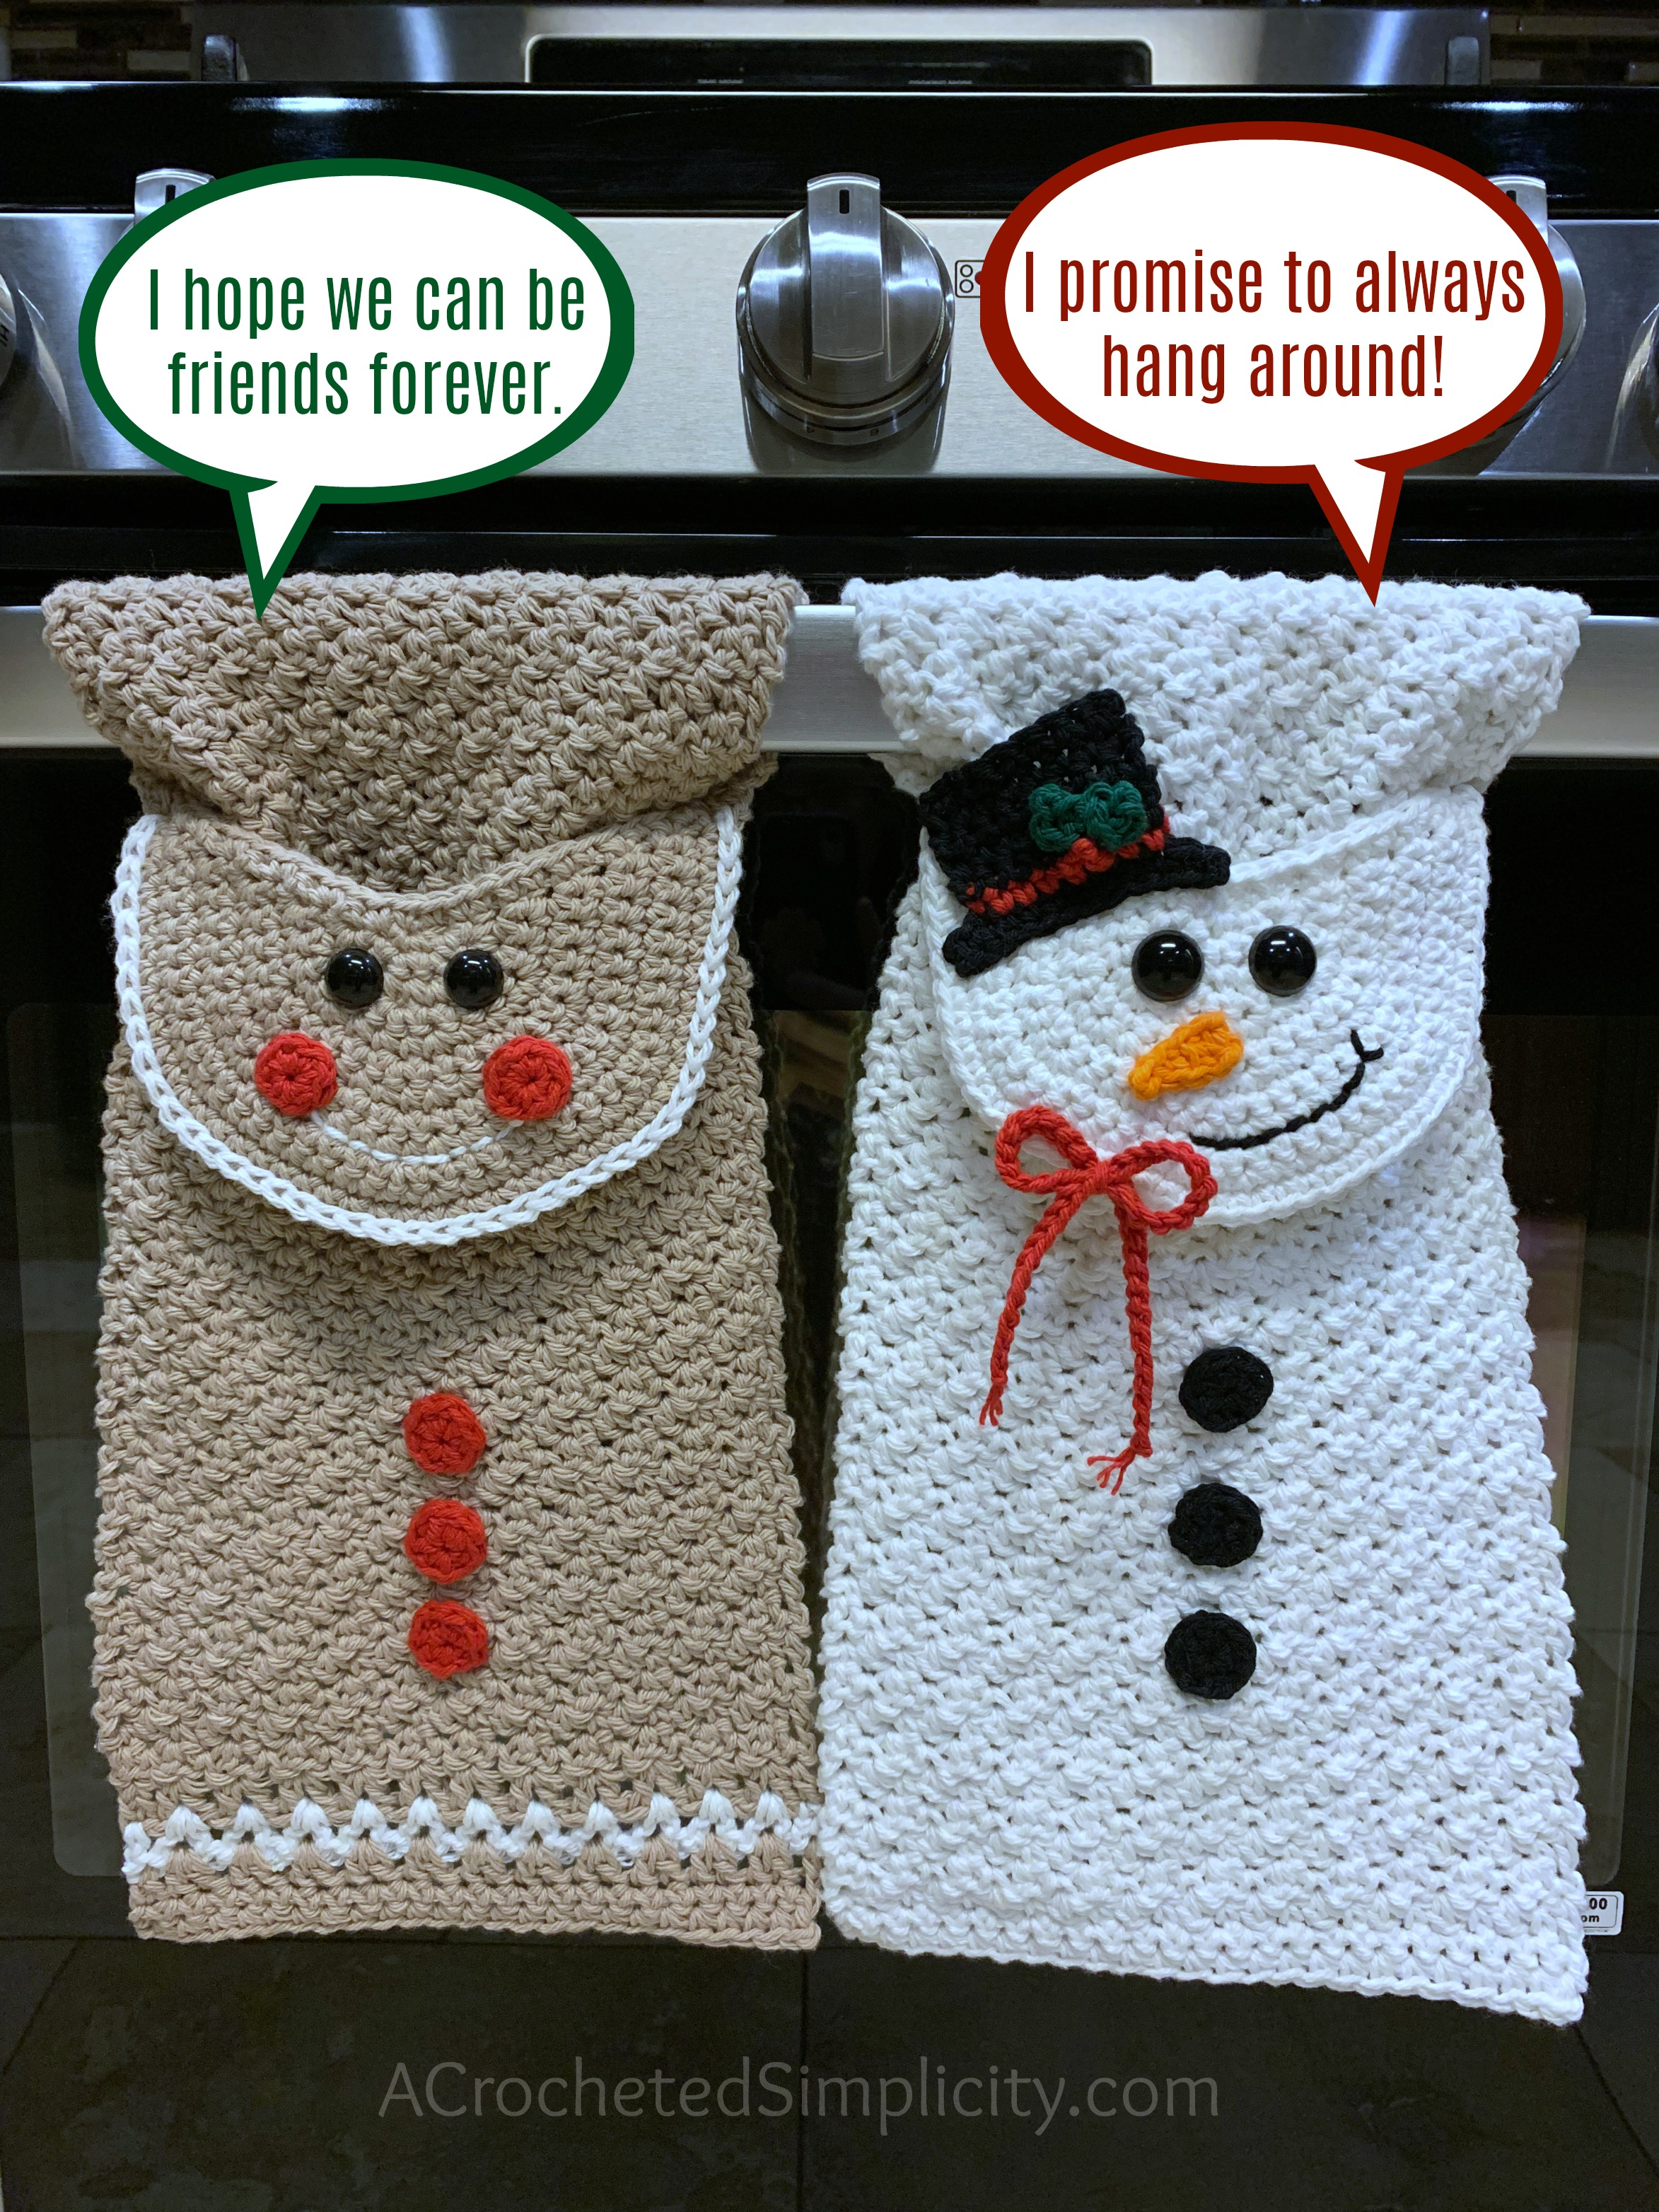 Free Crochet Patterns - Gingerbread Man & Snowman Kitchen Towels by A Crocheted Simplicity #crochetchristmastowel #gingerbreadmantowel #snowmantowel #freecrochetpattern #crochet #crochettowelpattern